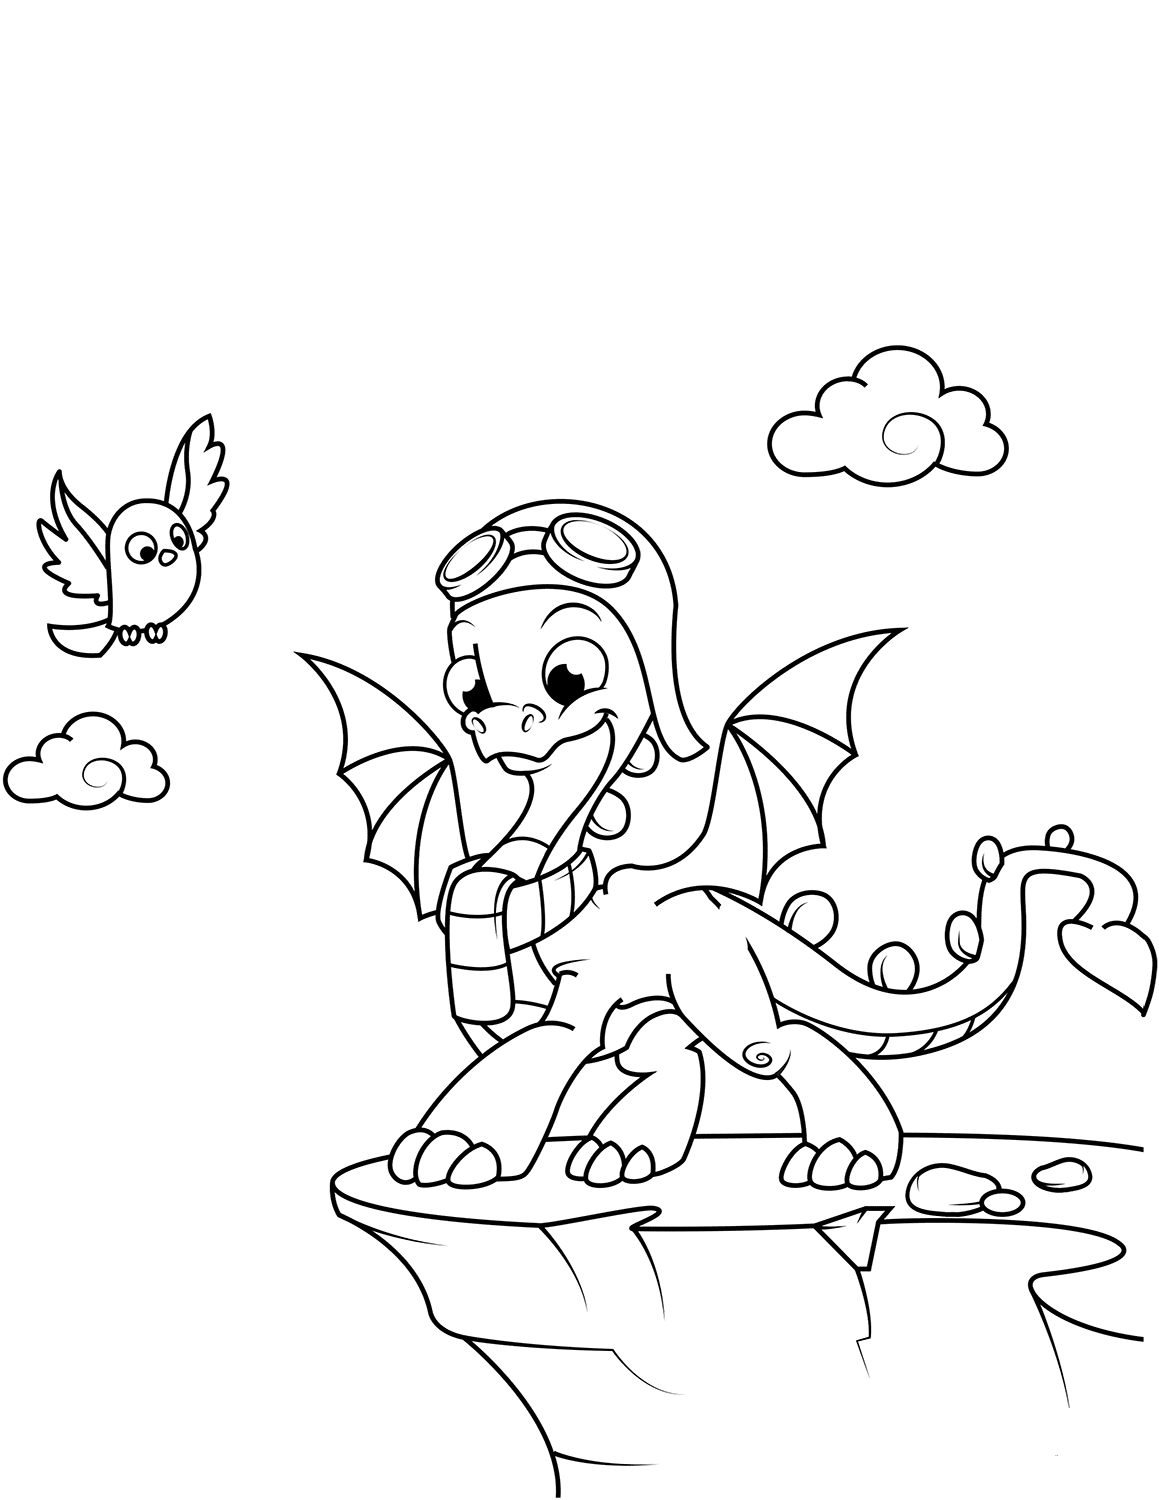 coloring pages of cute dragons cute baby dragon coloring pages at getcoloringscom free of pages cute dragons coloring